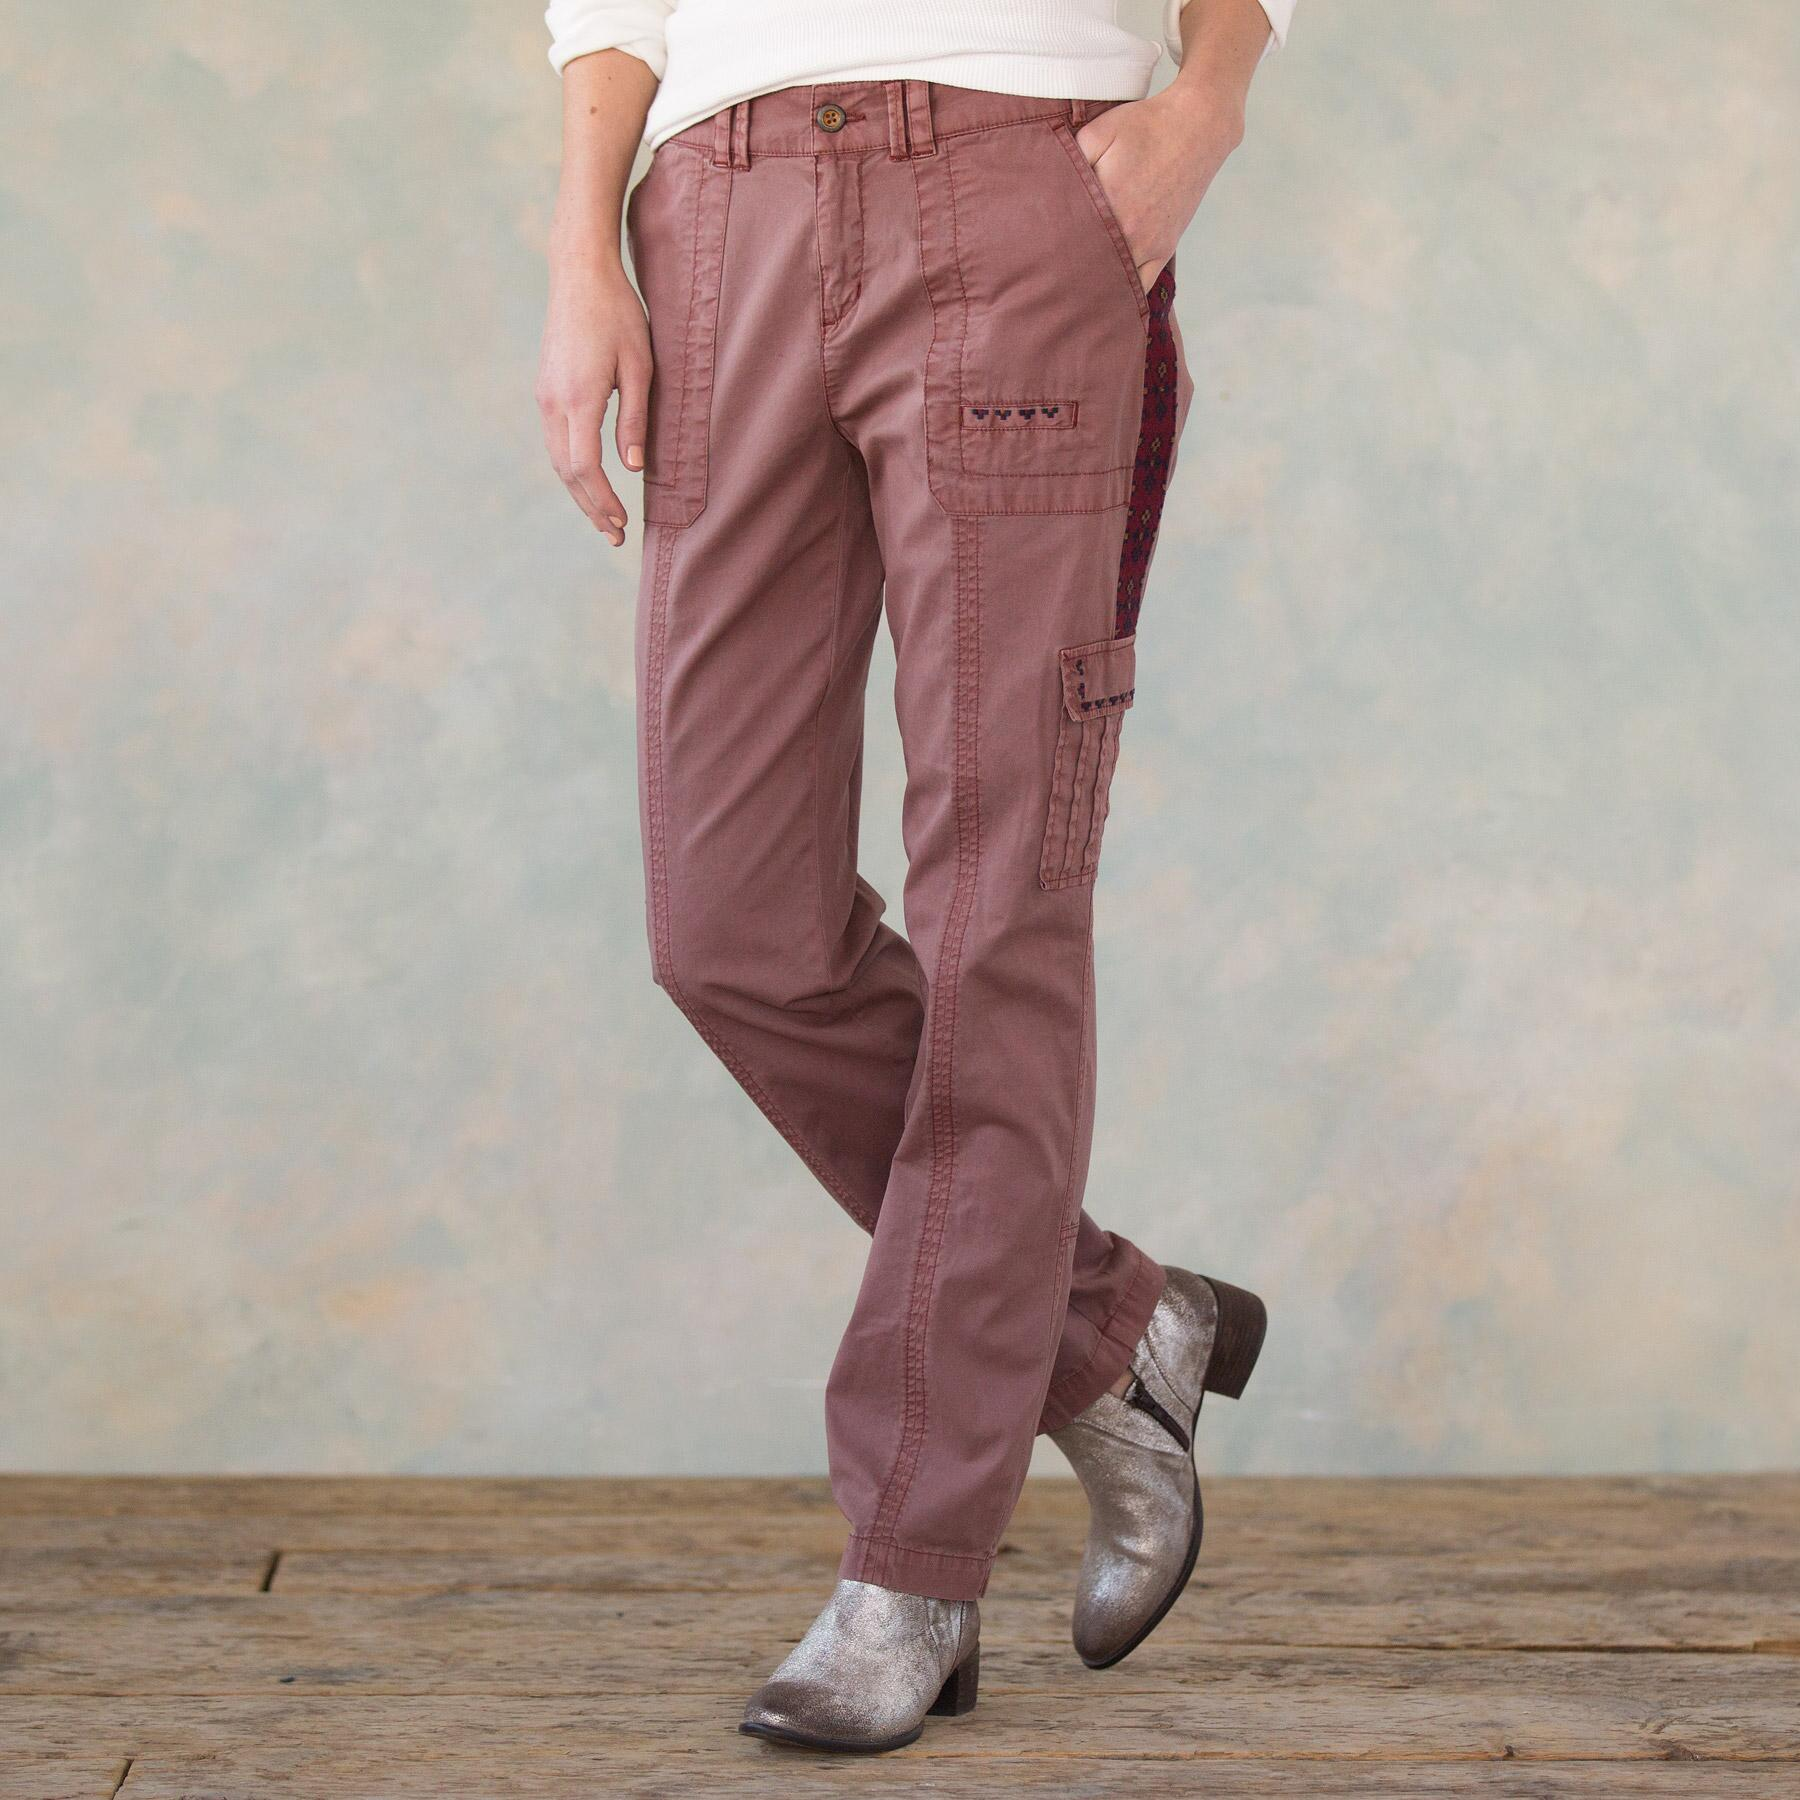 EVEN MORE CARGO PANTS: View 2